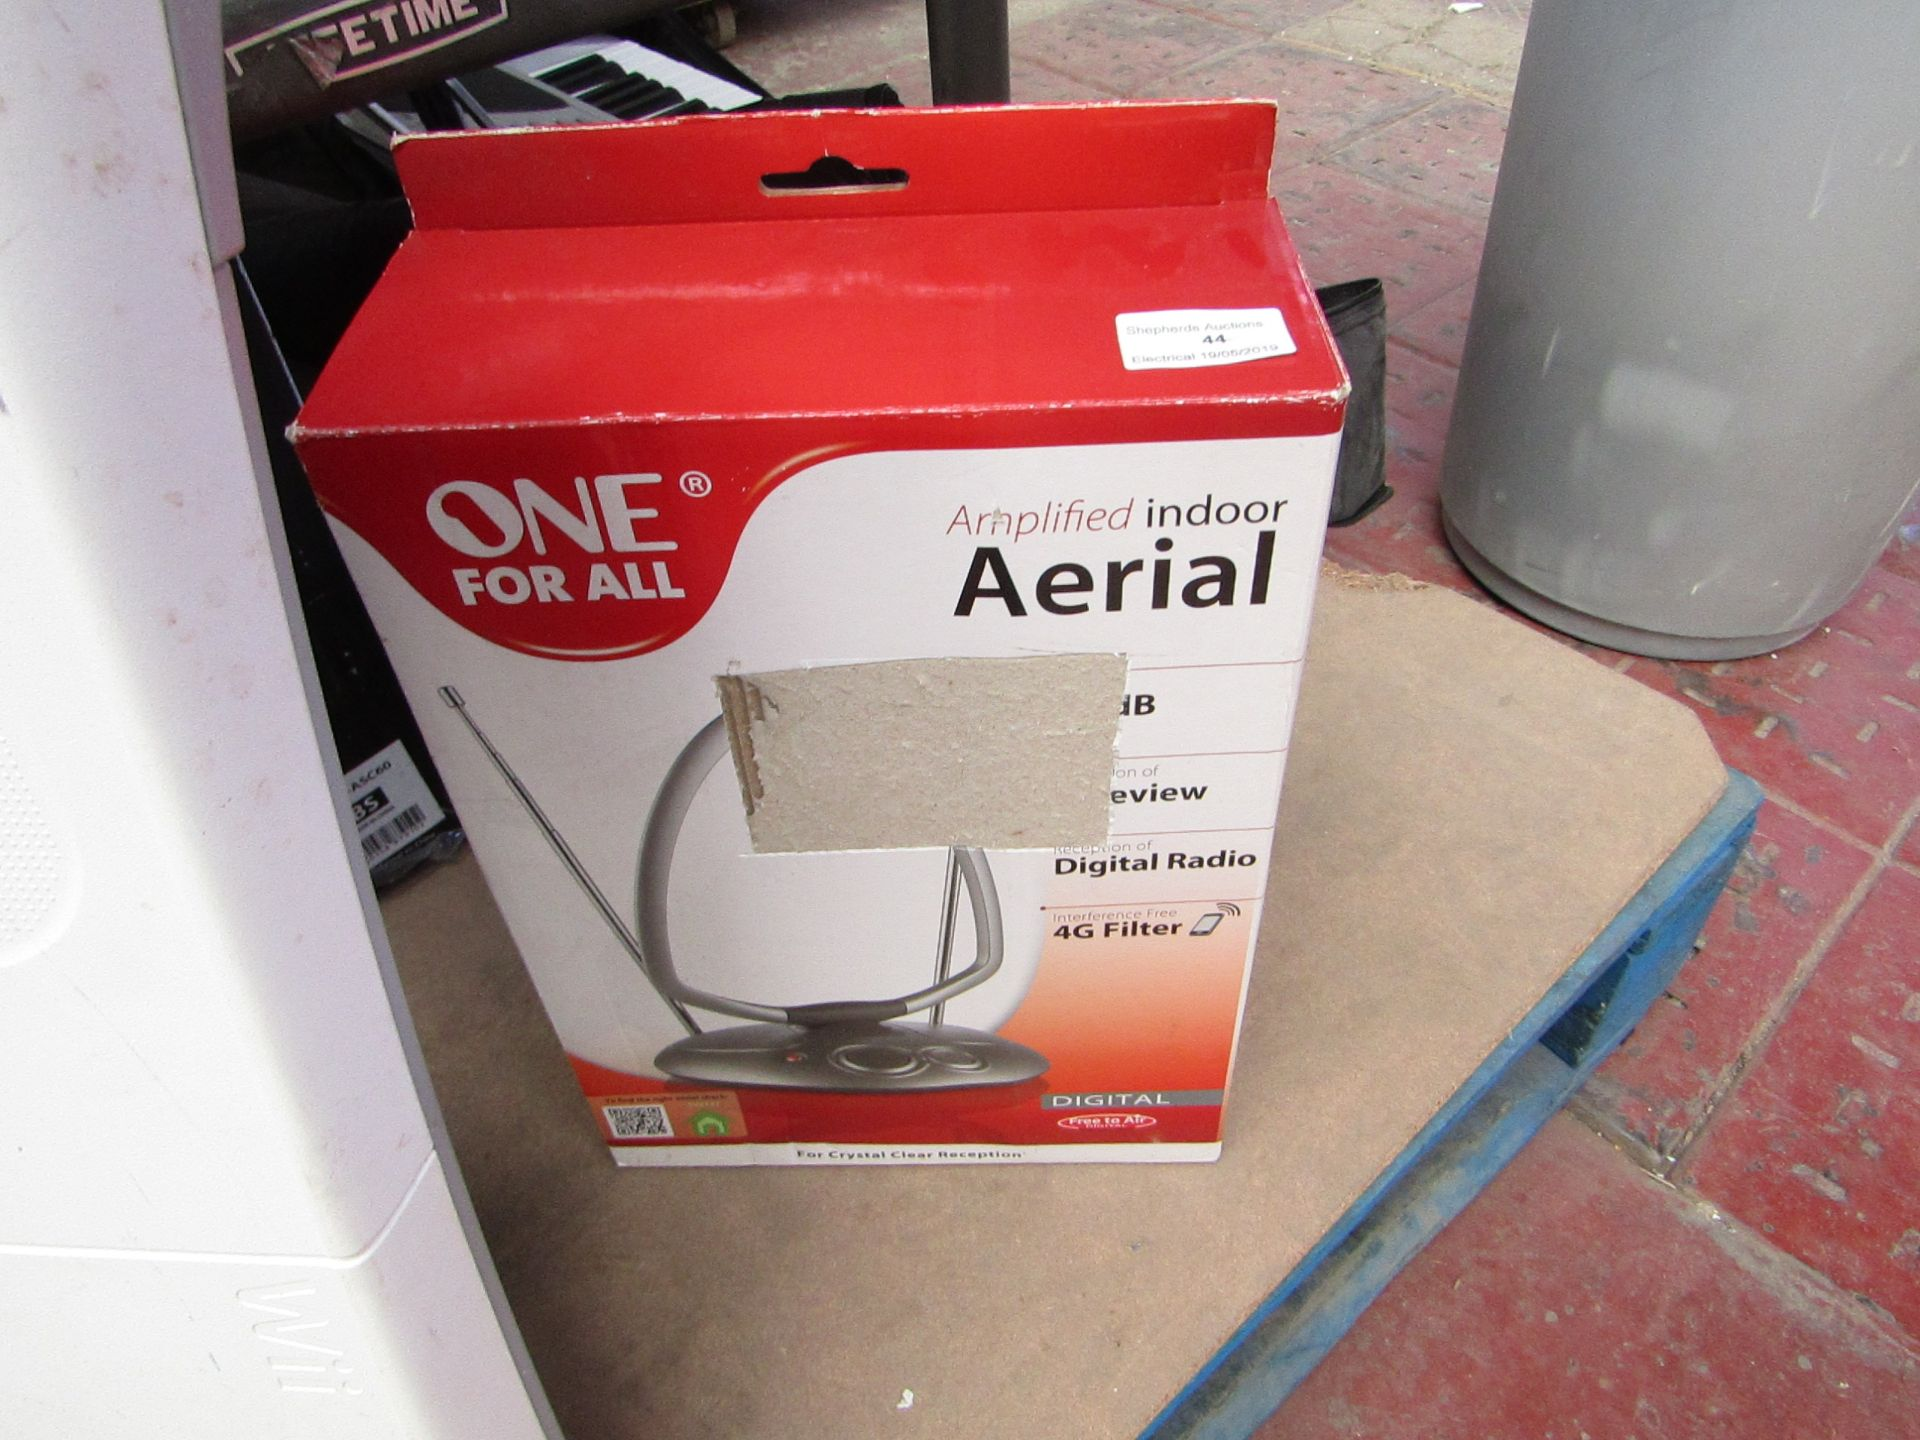 Lot 44 - One for all amplifies indorr areial. Unchecked & Boxed